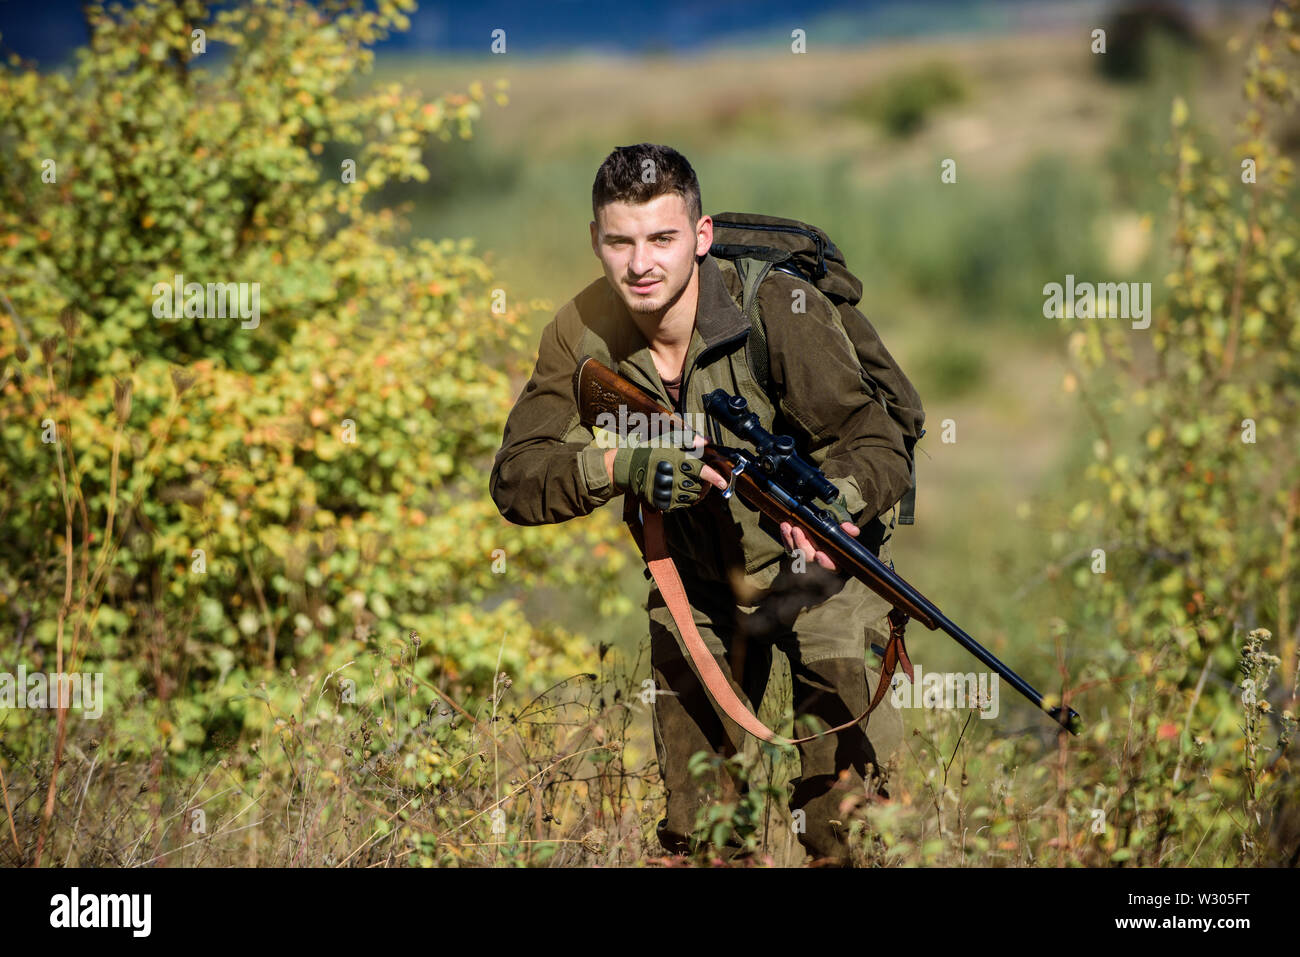 Bearded serious hunter spend leisure hunting. Hunter hold rifle. Man wear camouflage clothes nature background. Hunting permit. Hunting equipment for professionals. Hunting is brutal masculine hobby. - Stock Image